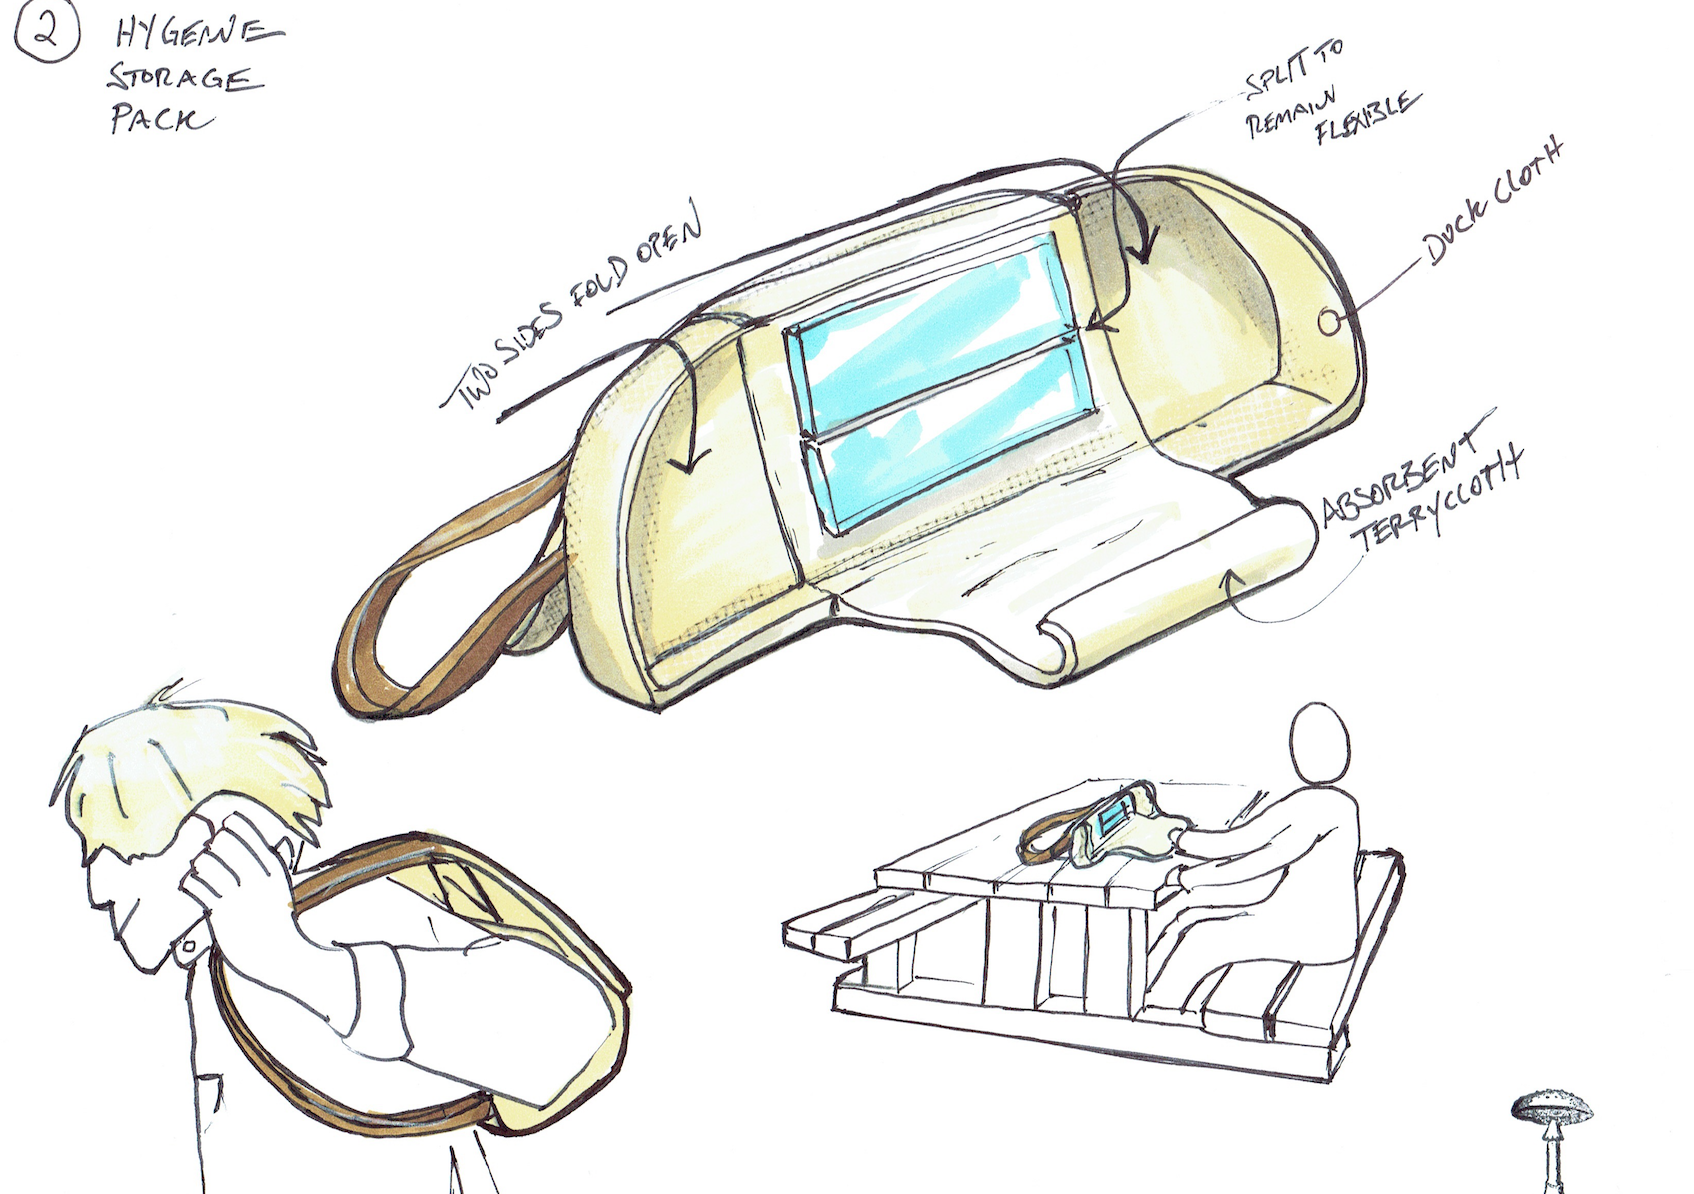 Hygeine Pack - Not much more than a dopp kit. Important was its small size, manufacturability, and potentially low cost.